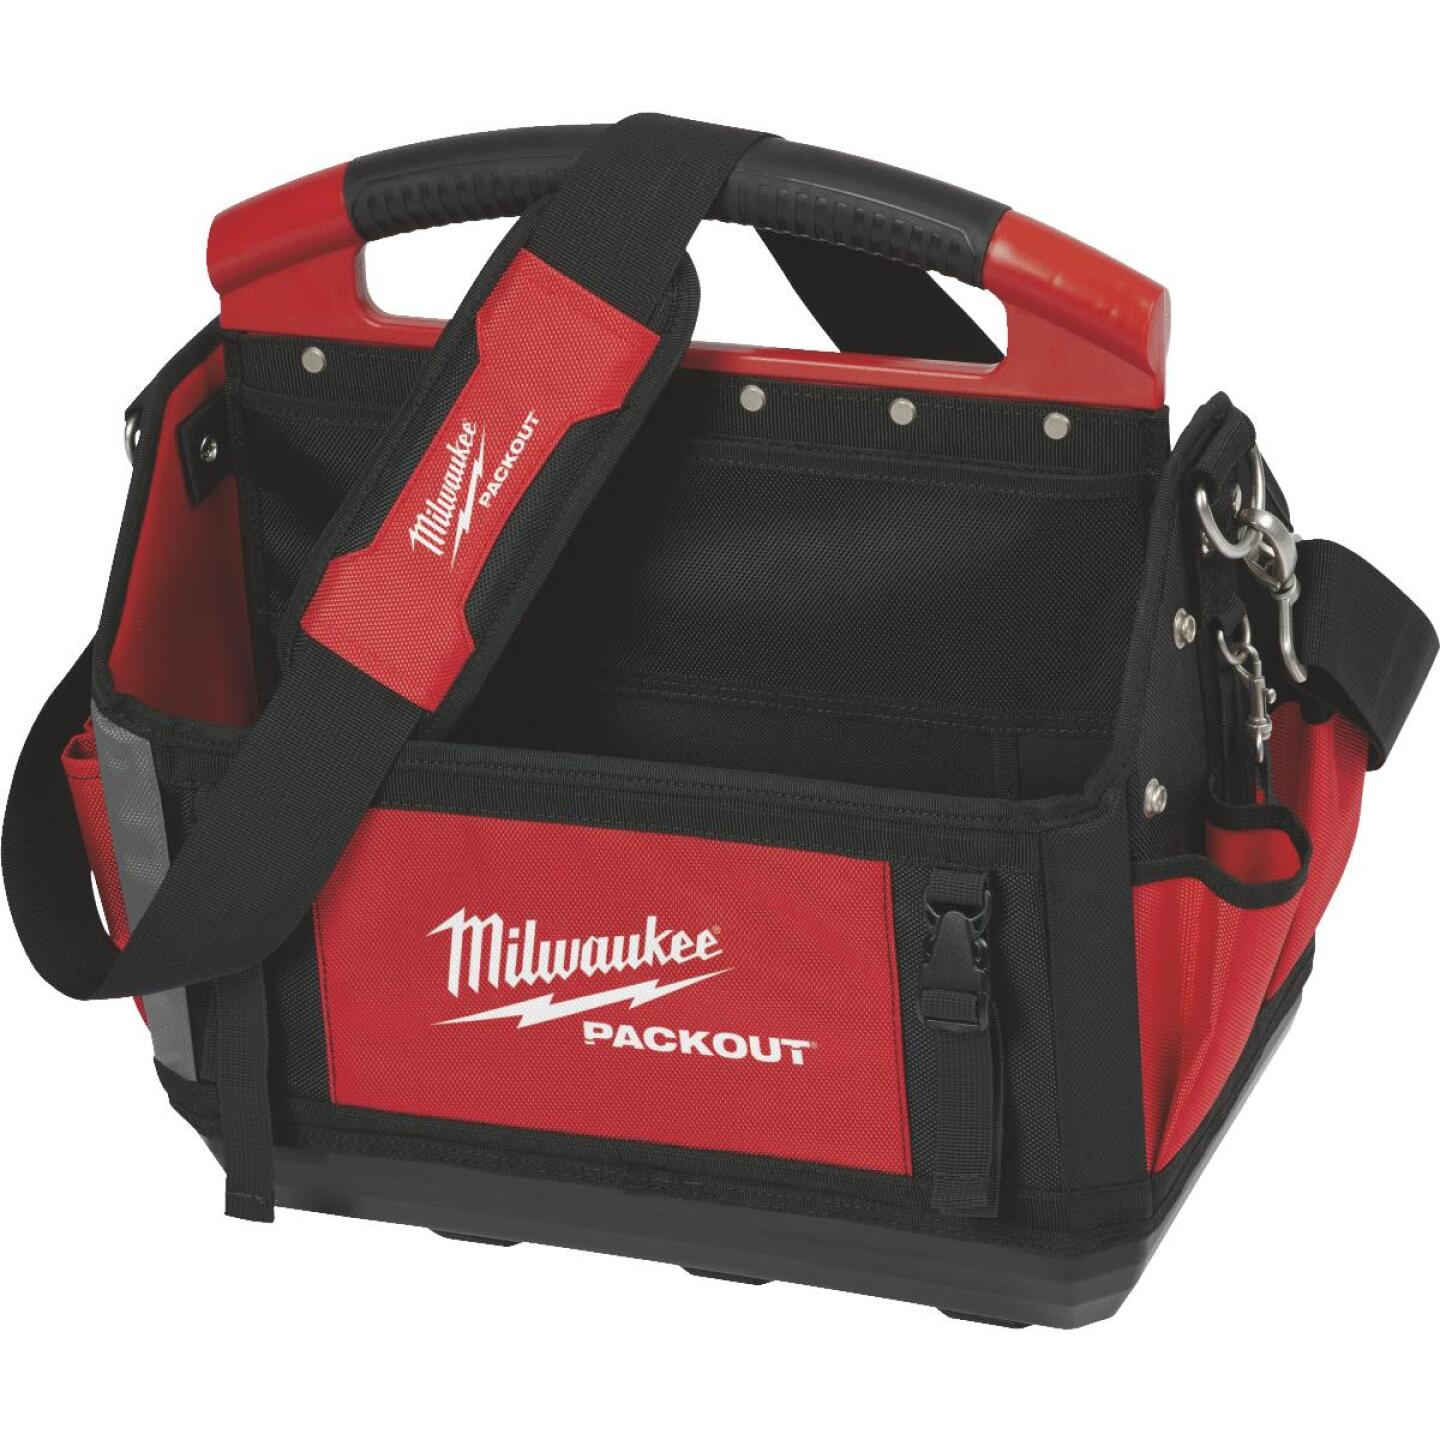 Milwaukee PACKOUT 31-Pocket 15 In. Tool Tote Image 1